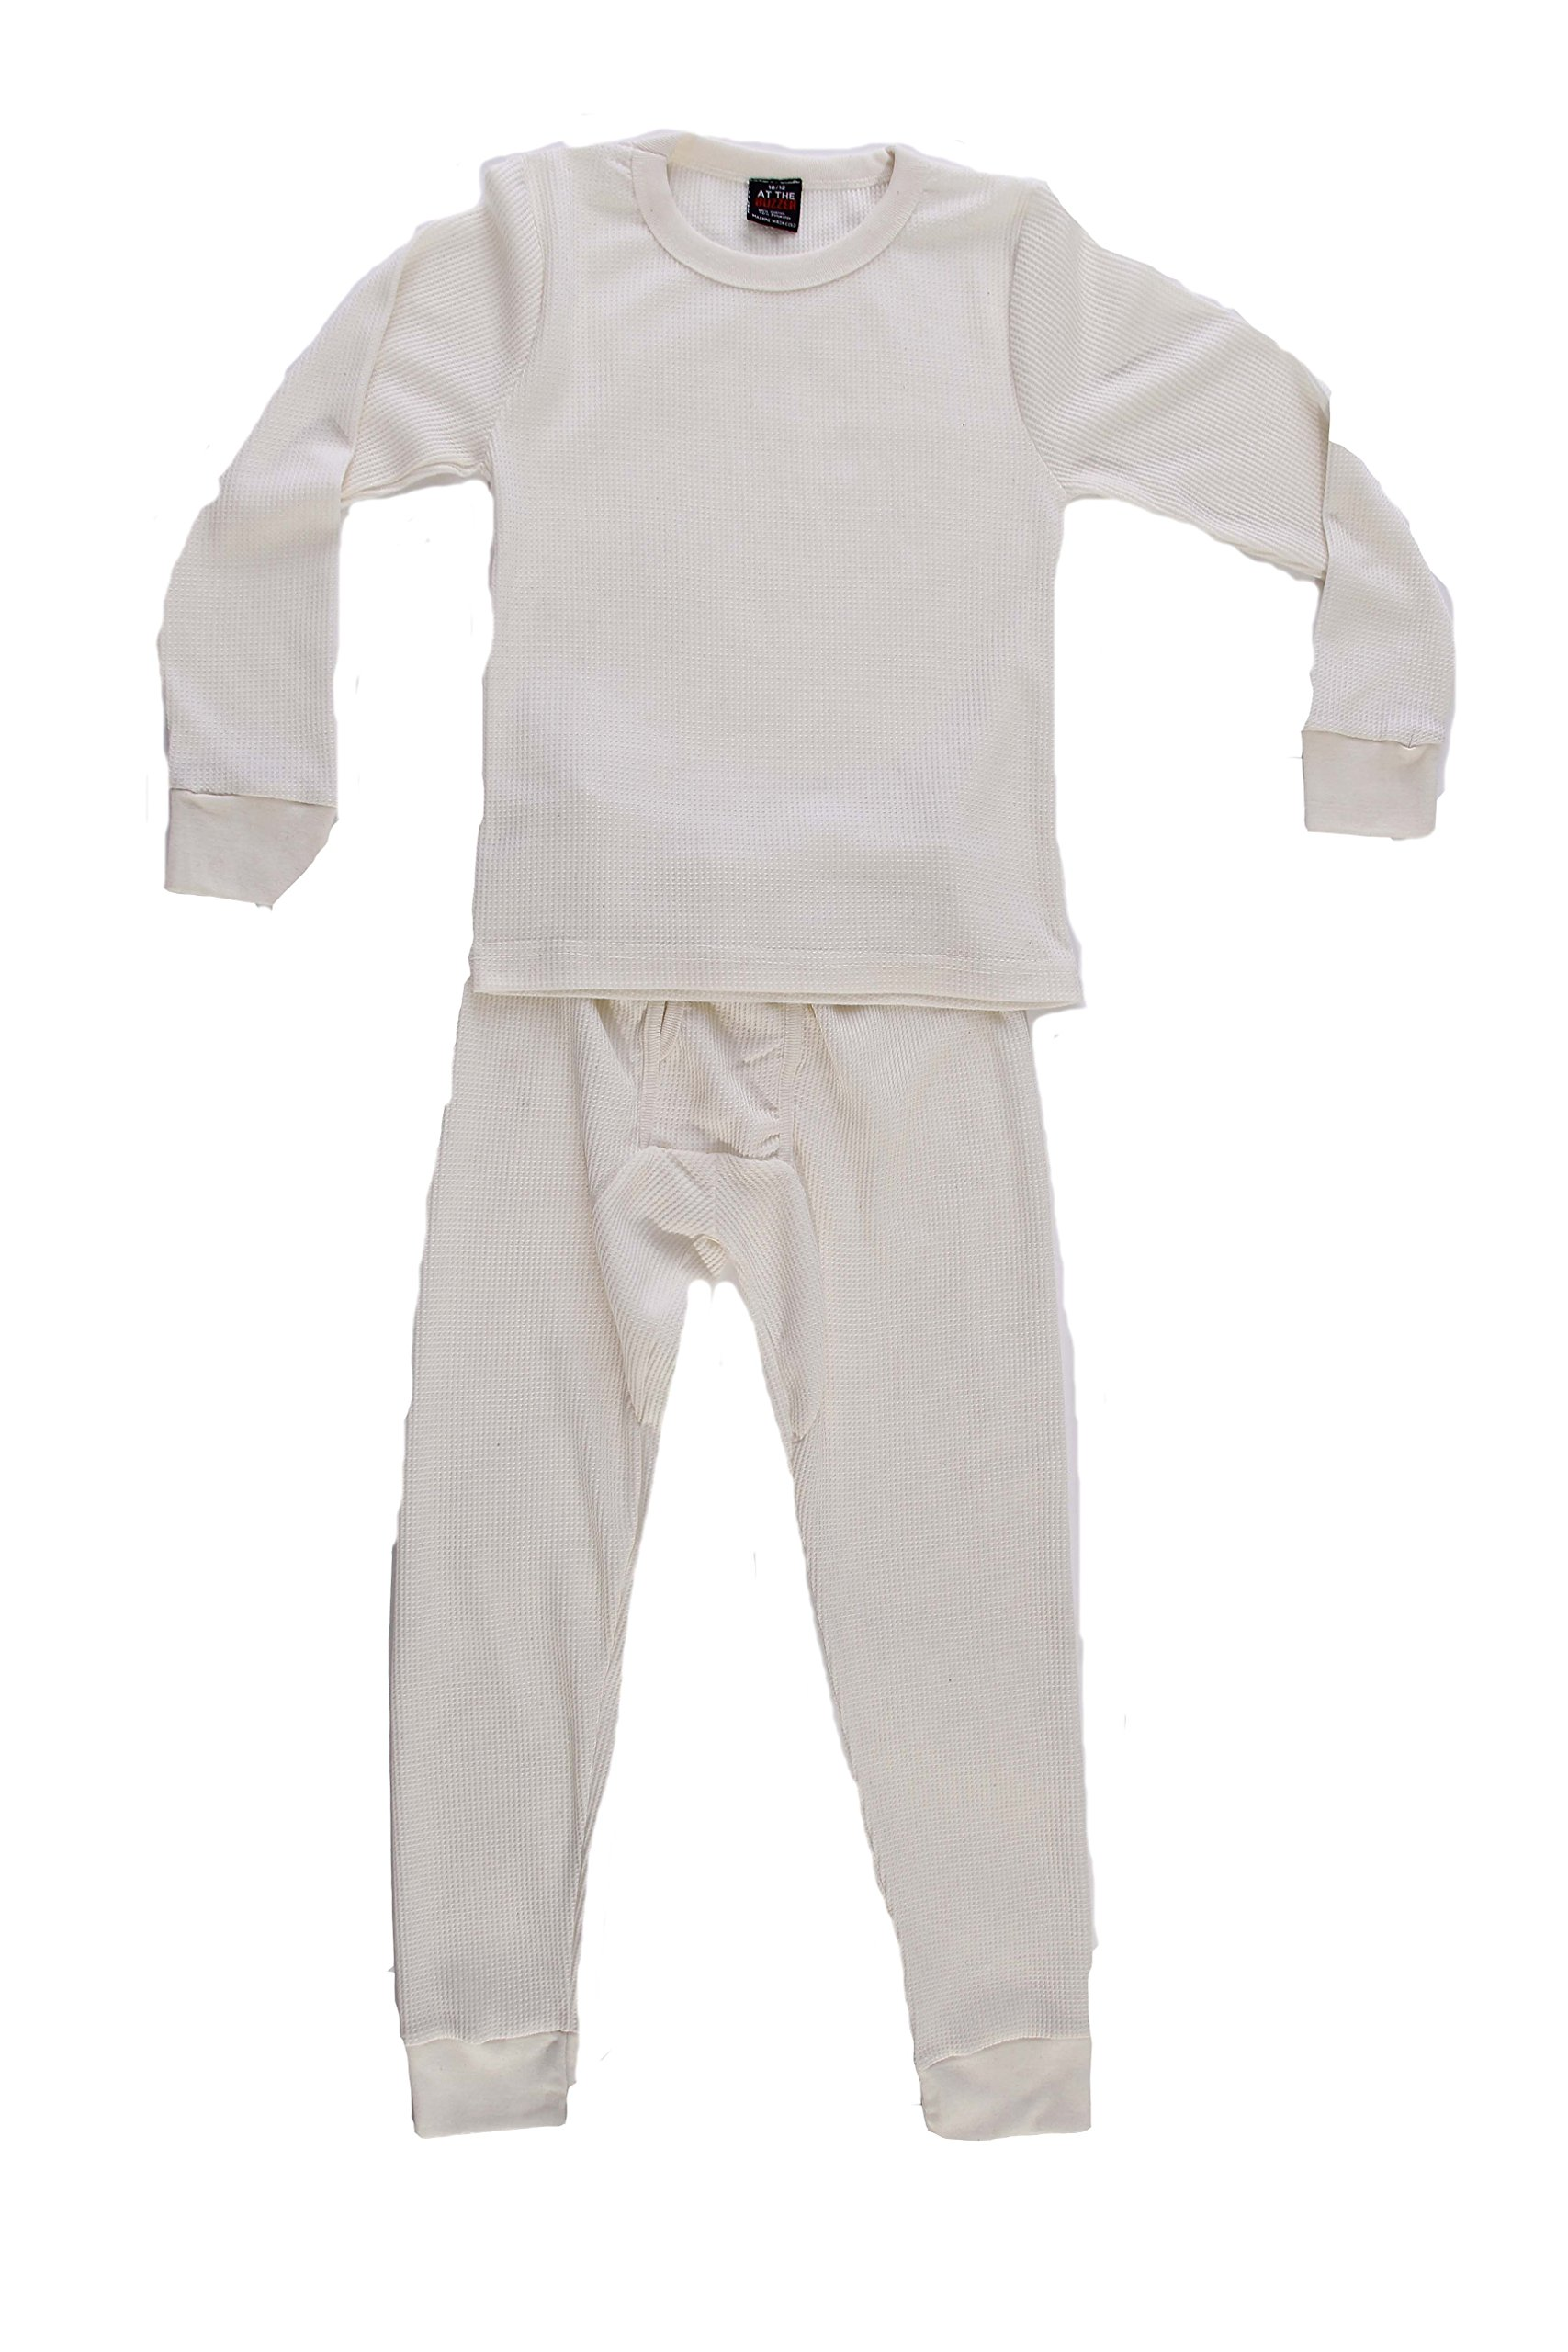 At The Buzzer Thermal Underwear Set for Boys 95362-Ecru-10/12 by At The Buzzer